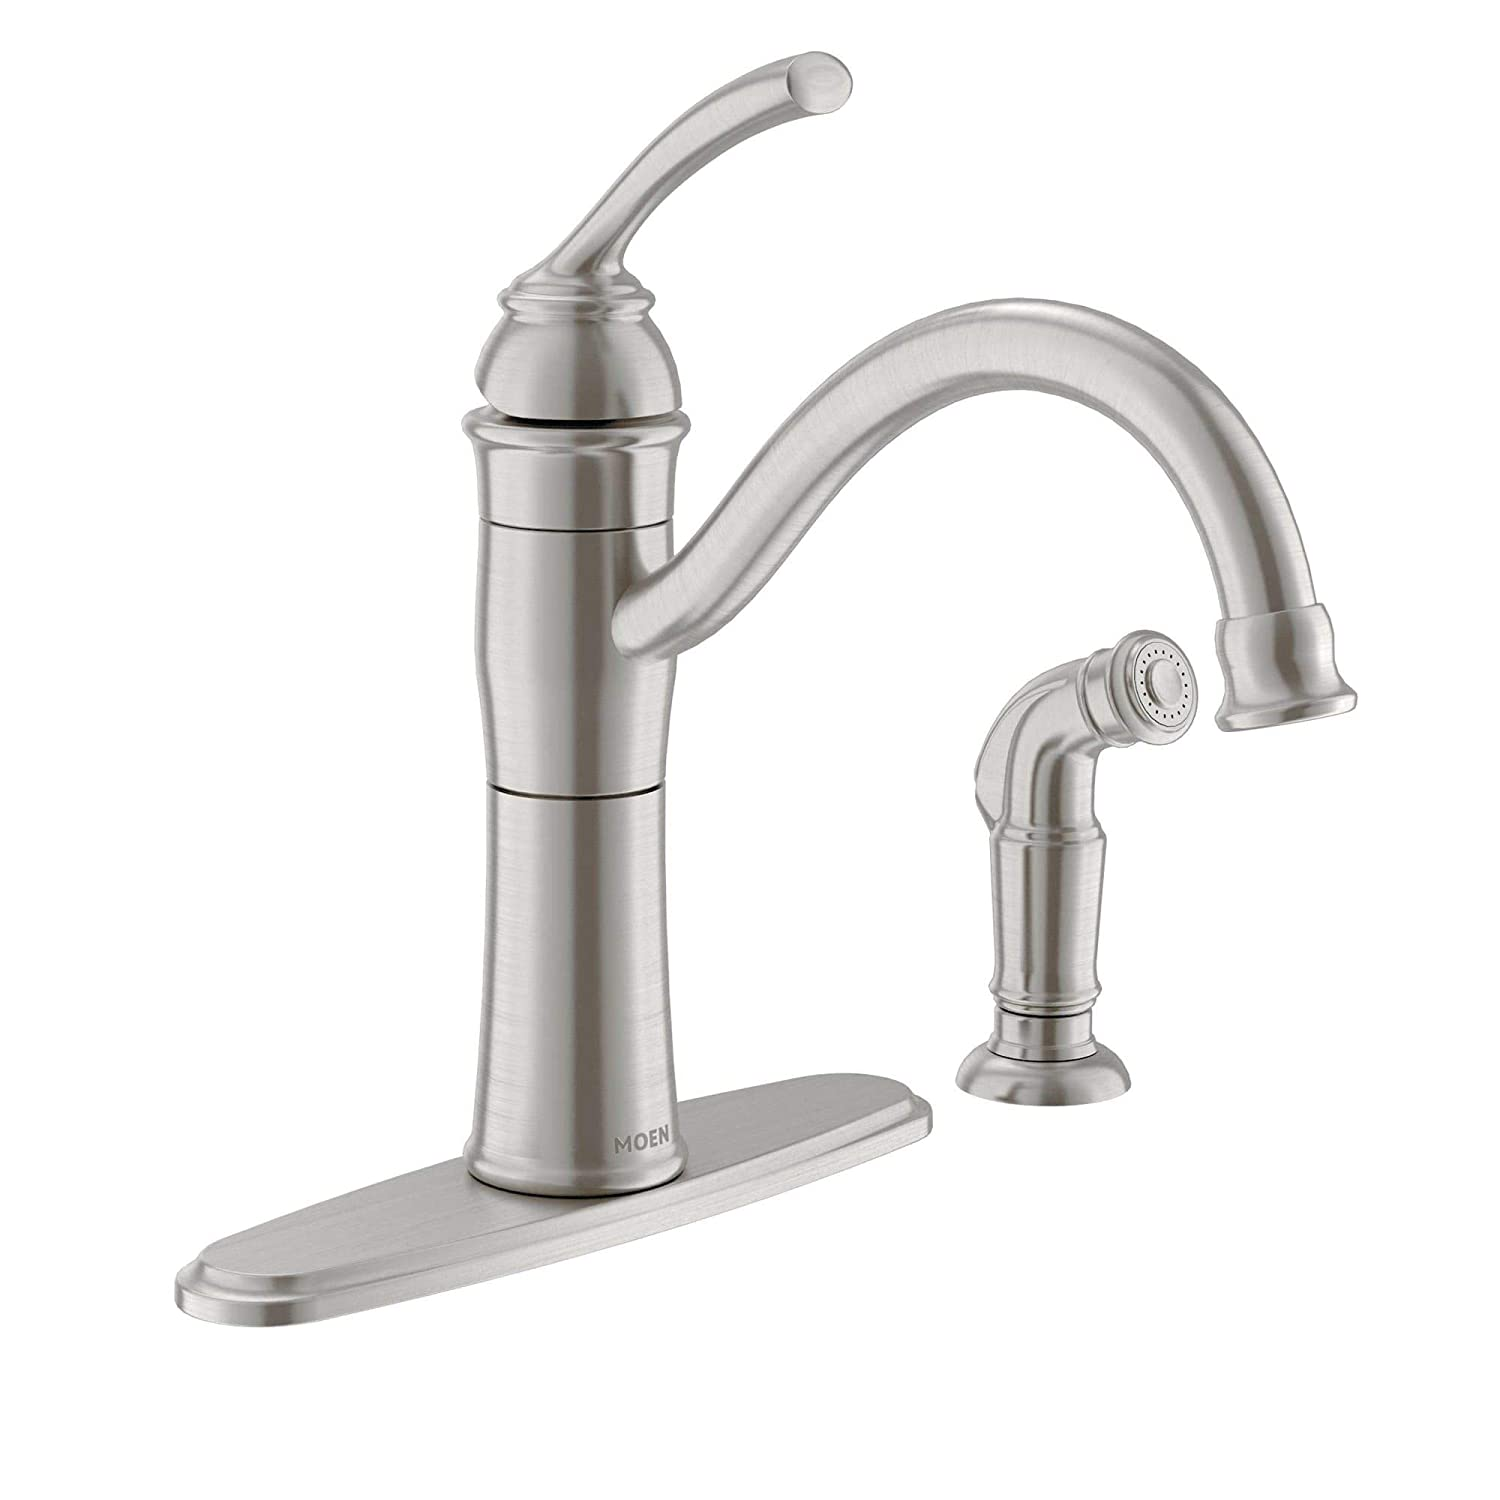 Moen 87230SRS High-Arc Kitchen Faucet with Side Spray from the Braemore Collection, Spot Resist Stainless